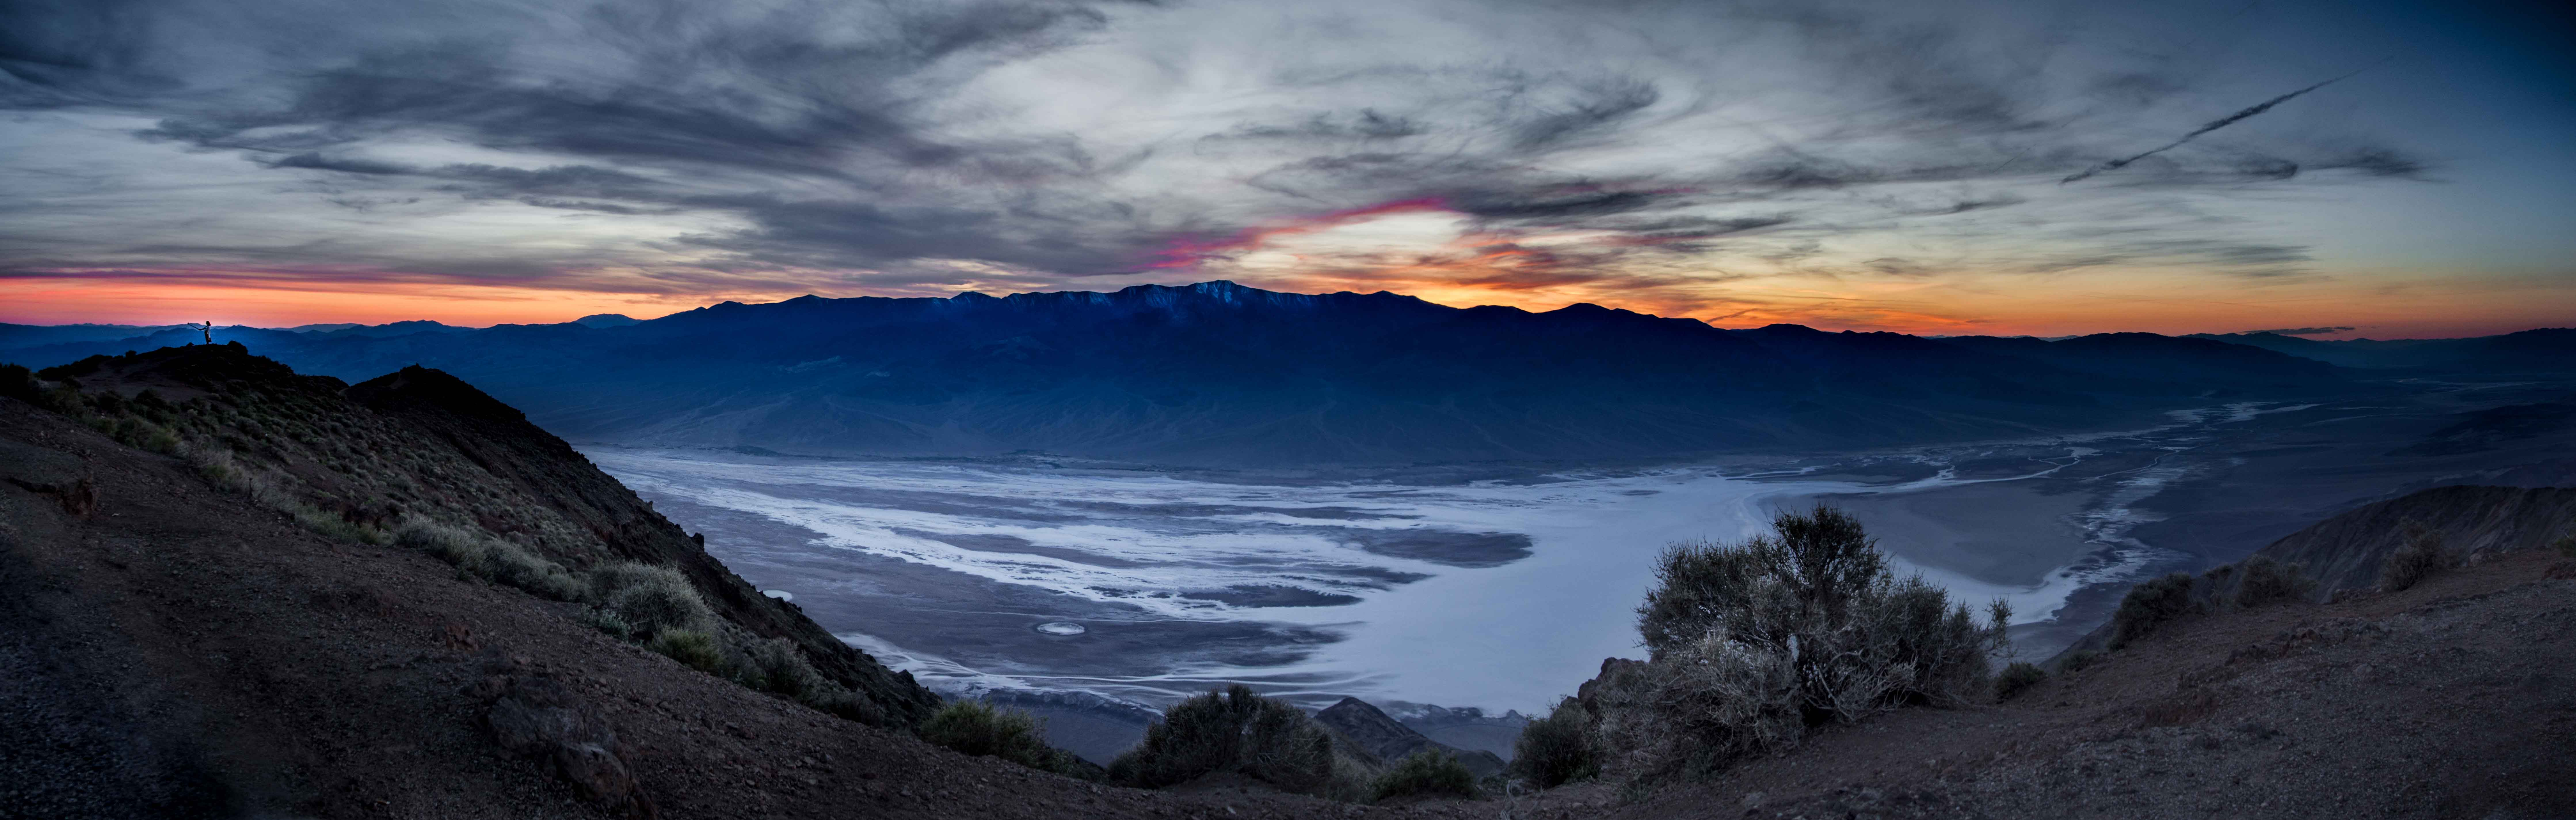 A panorama of a sunset's last breath over the salt flats of Death Valley.